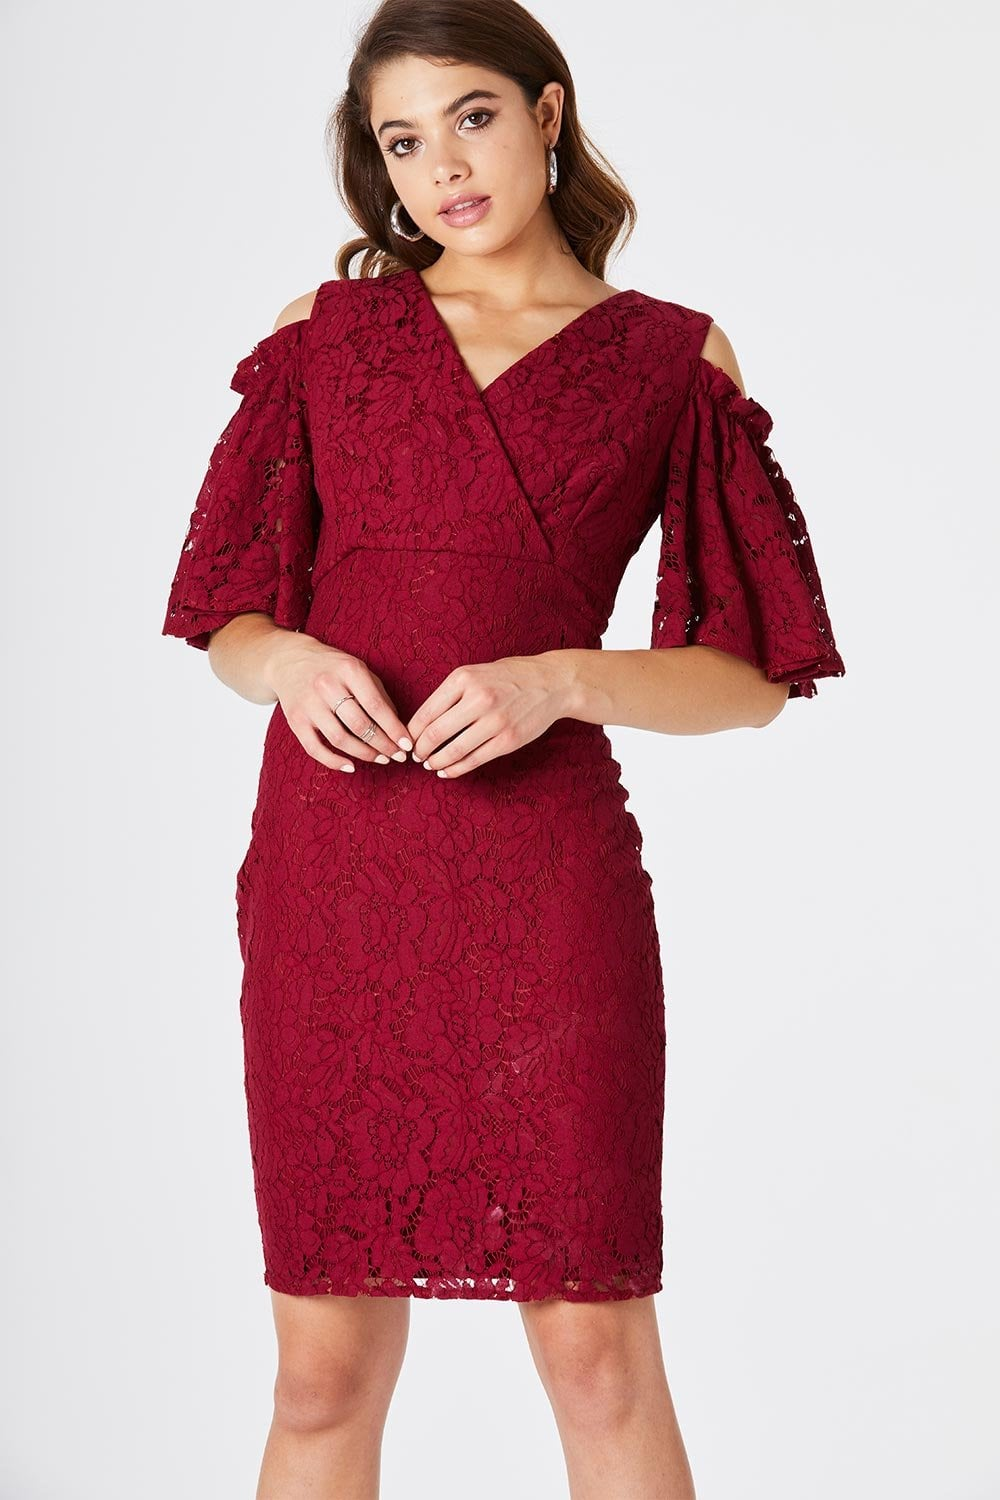 4c185a15d0 Outlet Girls On Film Elixir Lace Cold Shoulder Dress - Outlet Girls On Film  from Little Mistress UK